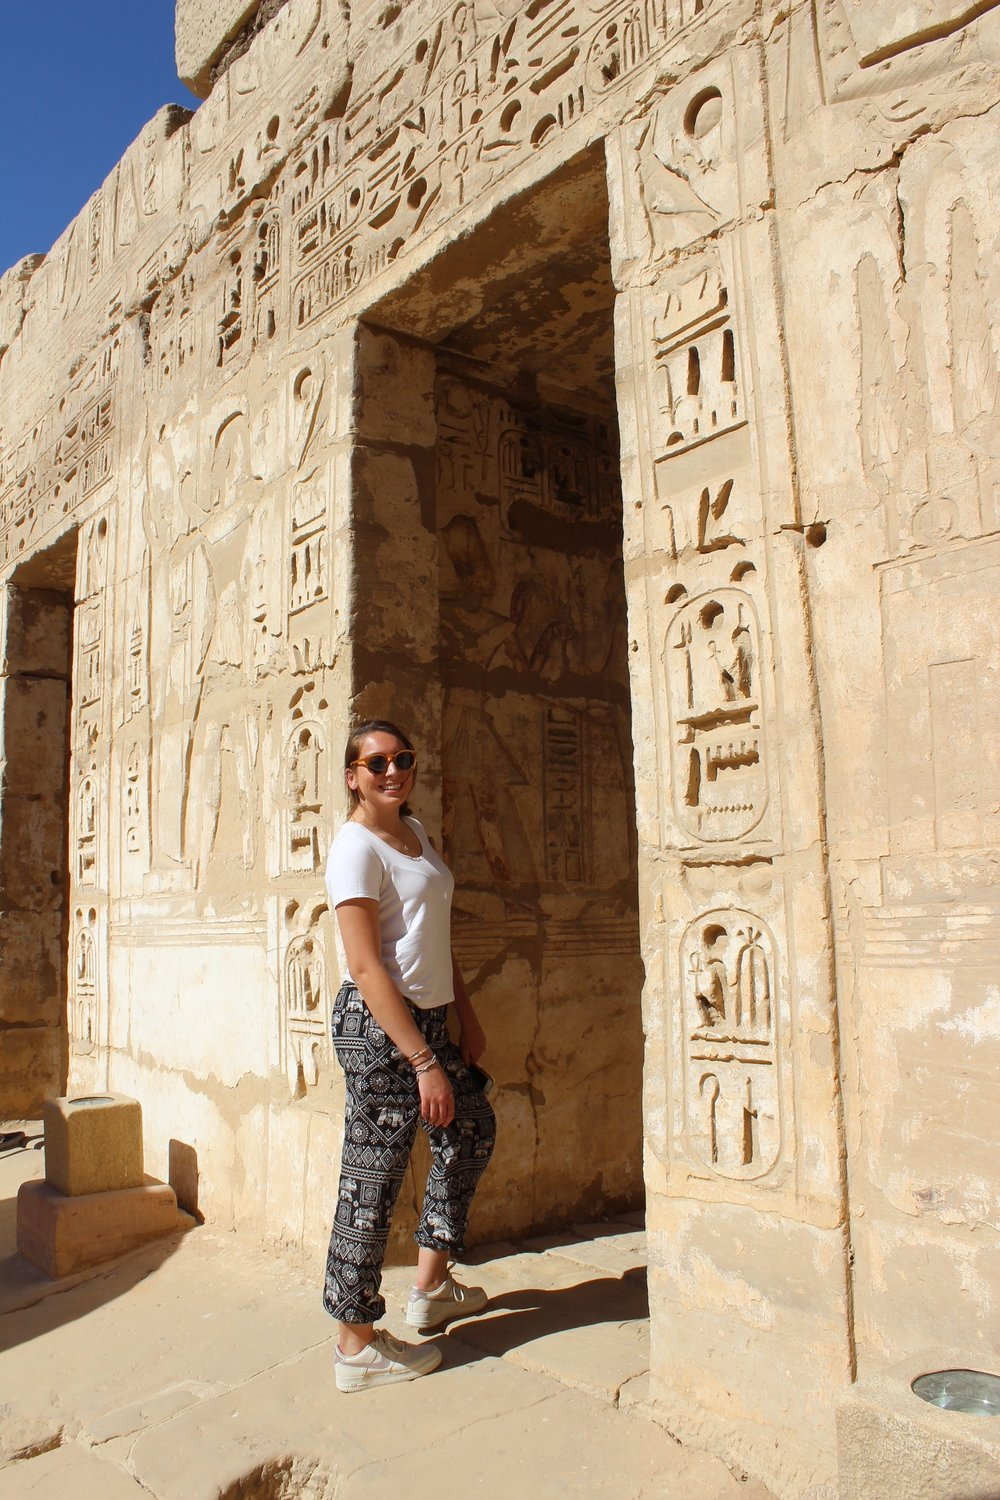 We arrived in Luxor and went straight to the temple. Photo credit: Arguin, 2019